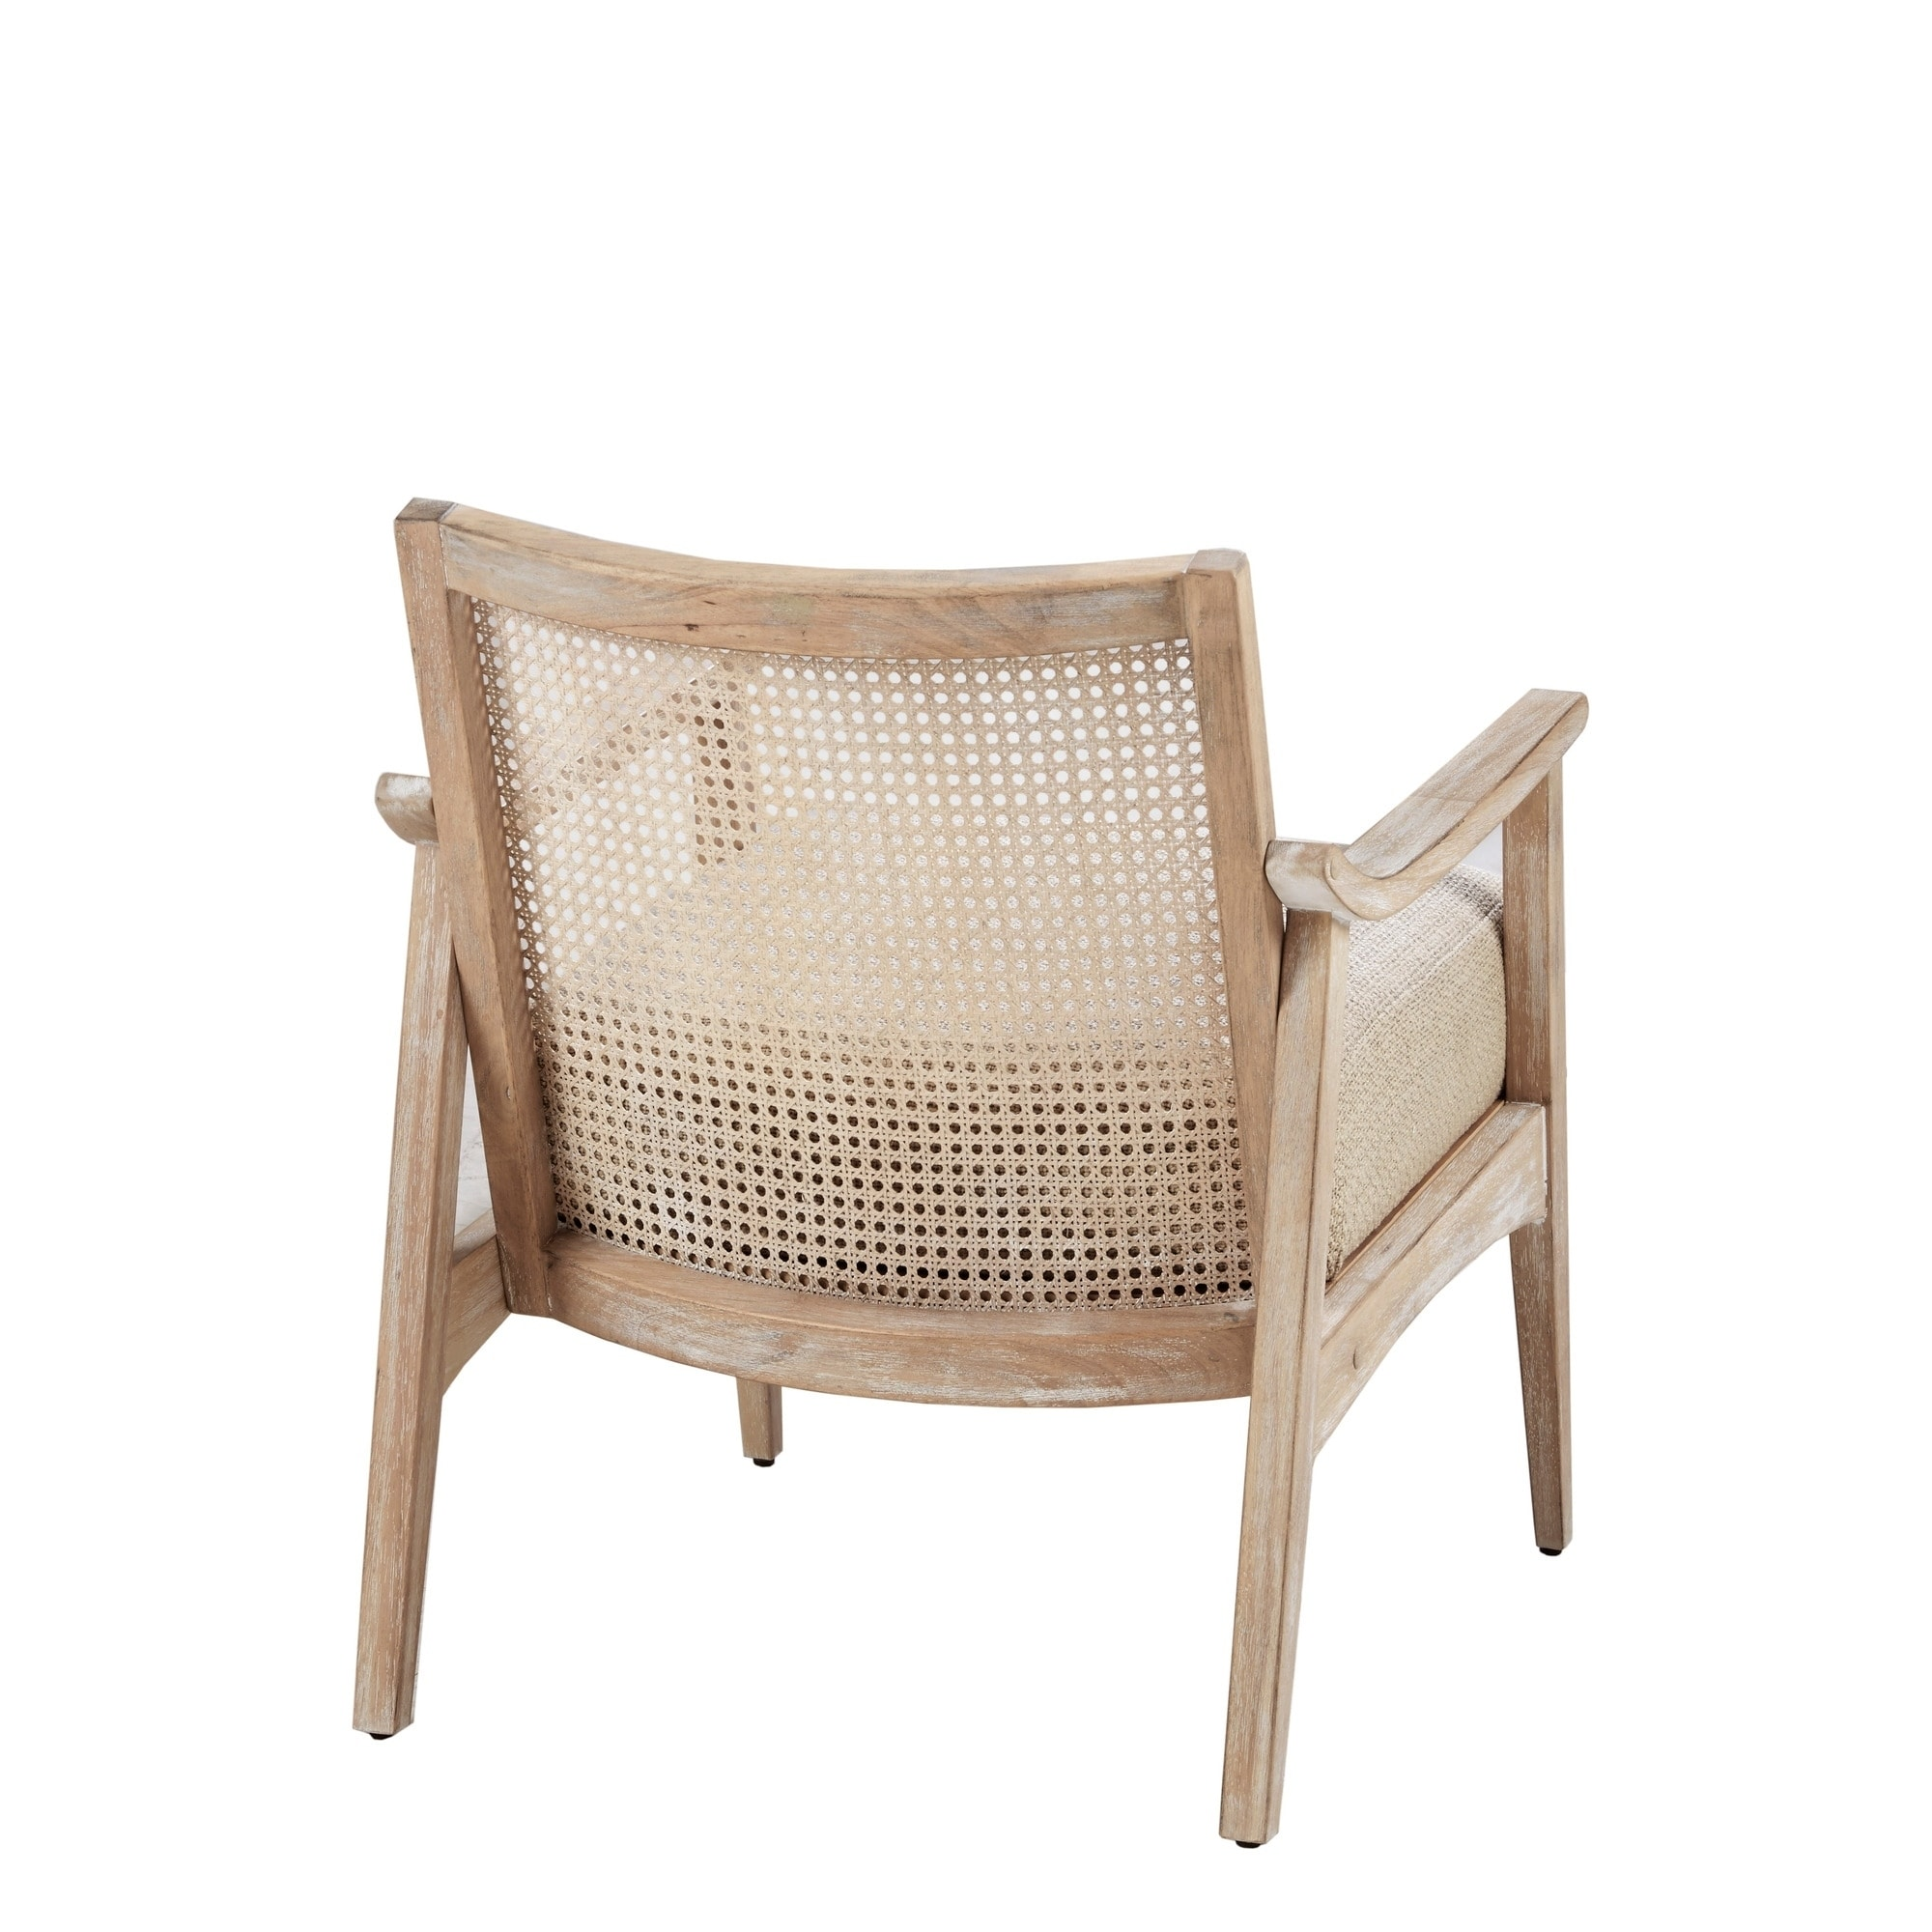 brown accent chairs material to cover dining room shop ink ivy kelly light chair 25 w x 27 75 d 30 5 h free shipping today overstock com 22484831